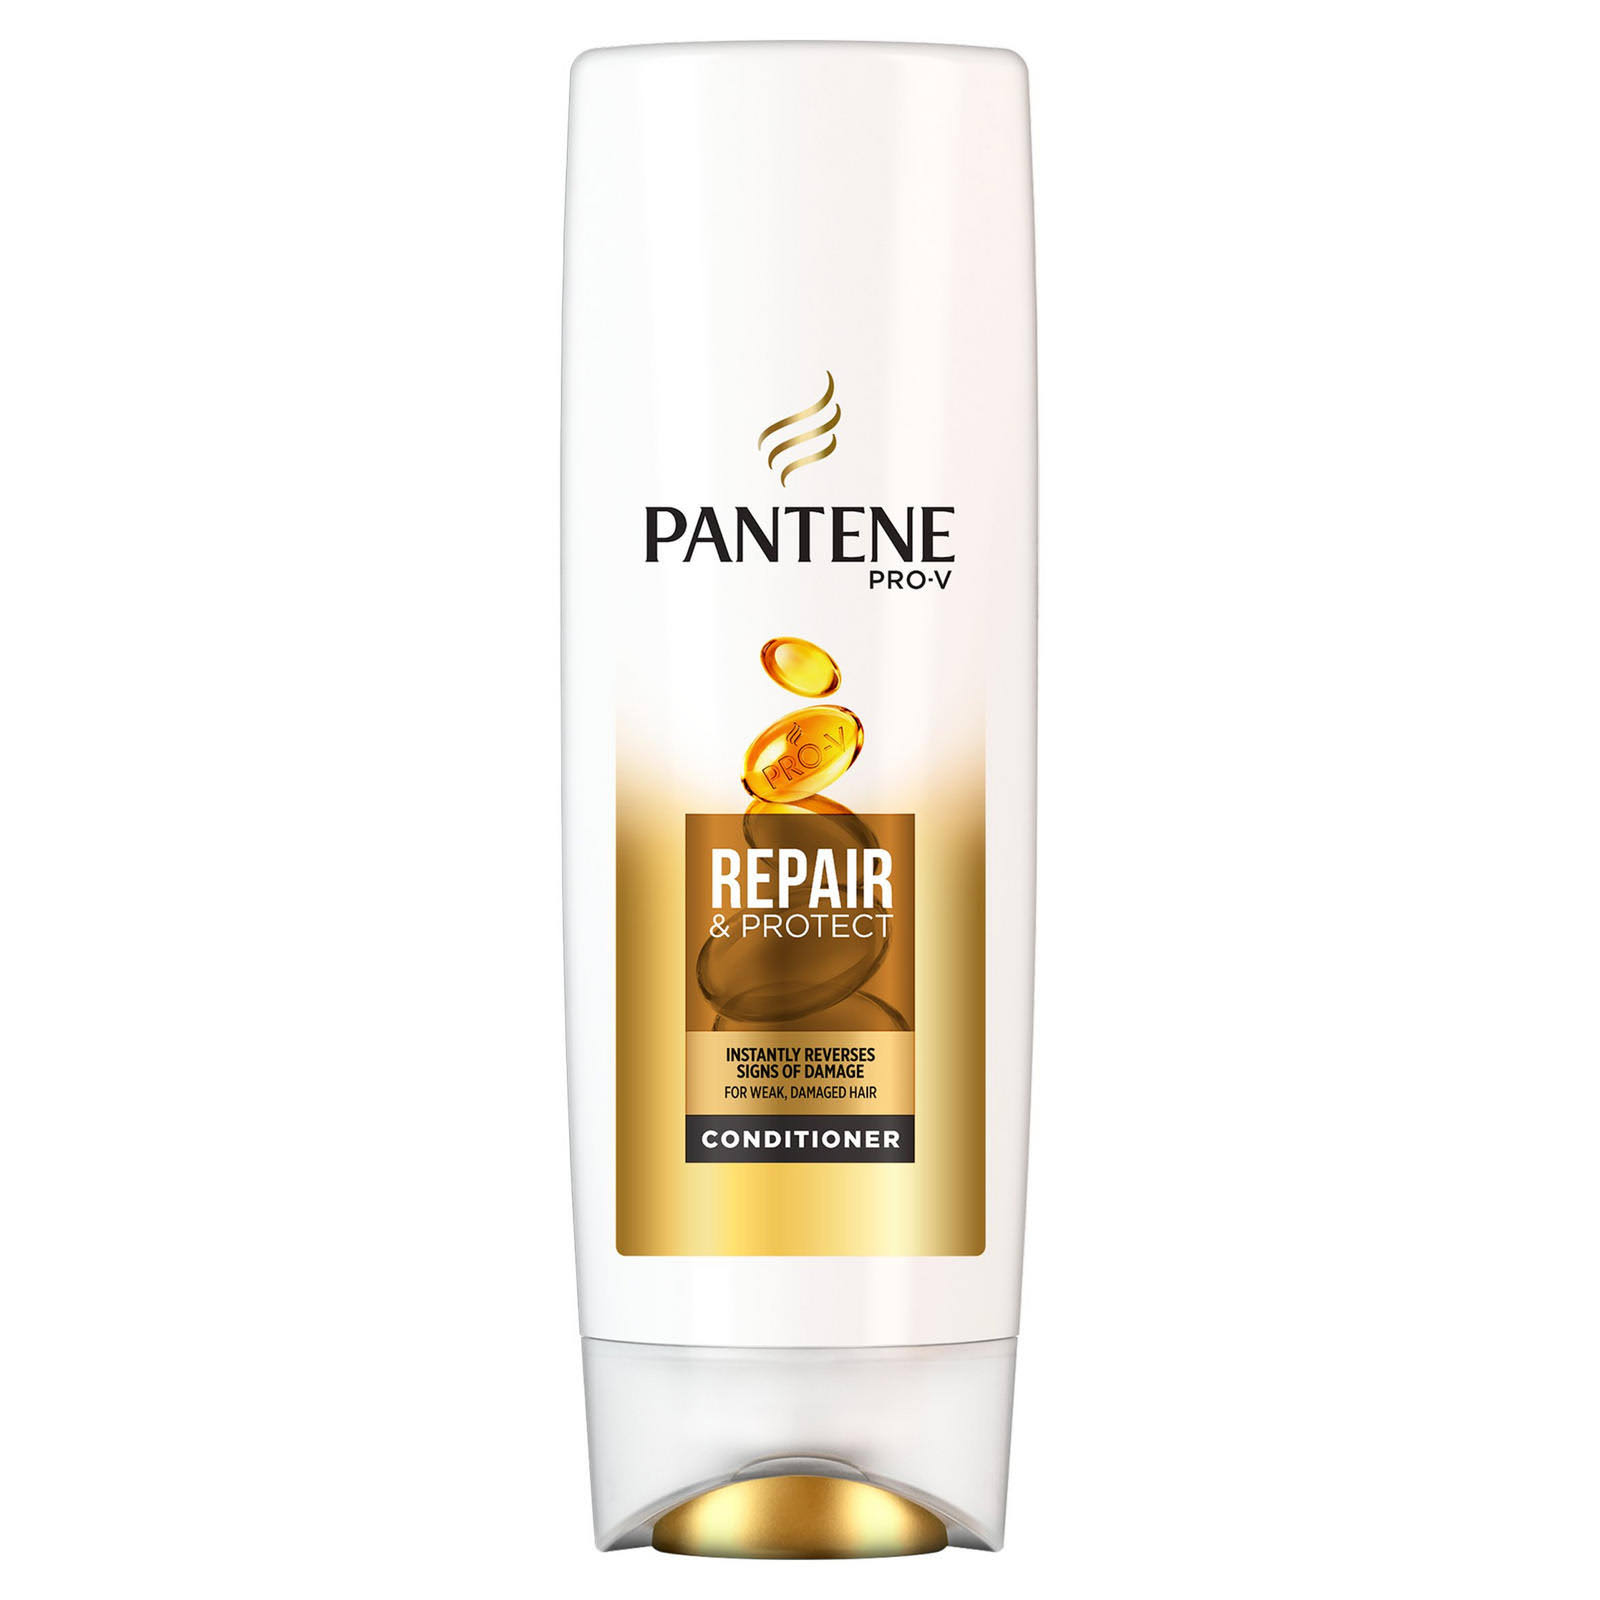 Pantene Pro V Repair and Protect Conditioner - For Damaged Hair, 360ml